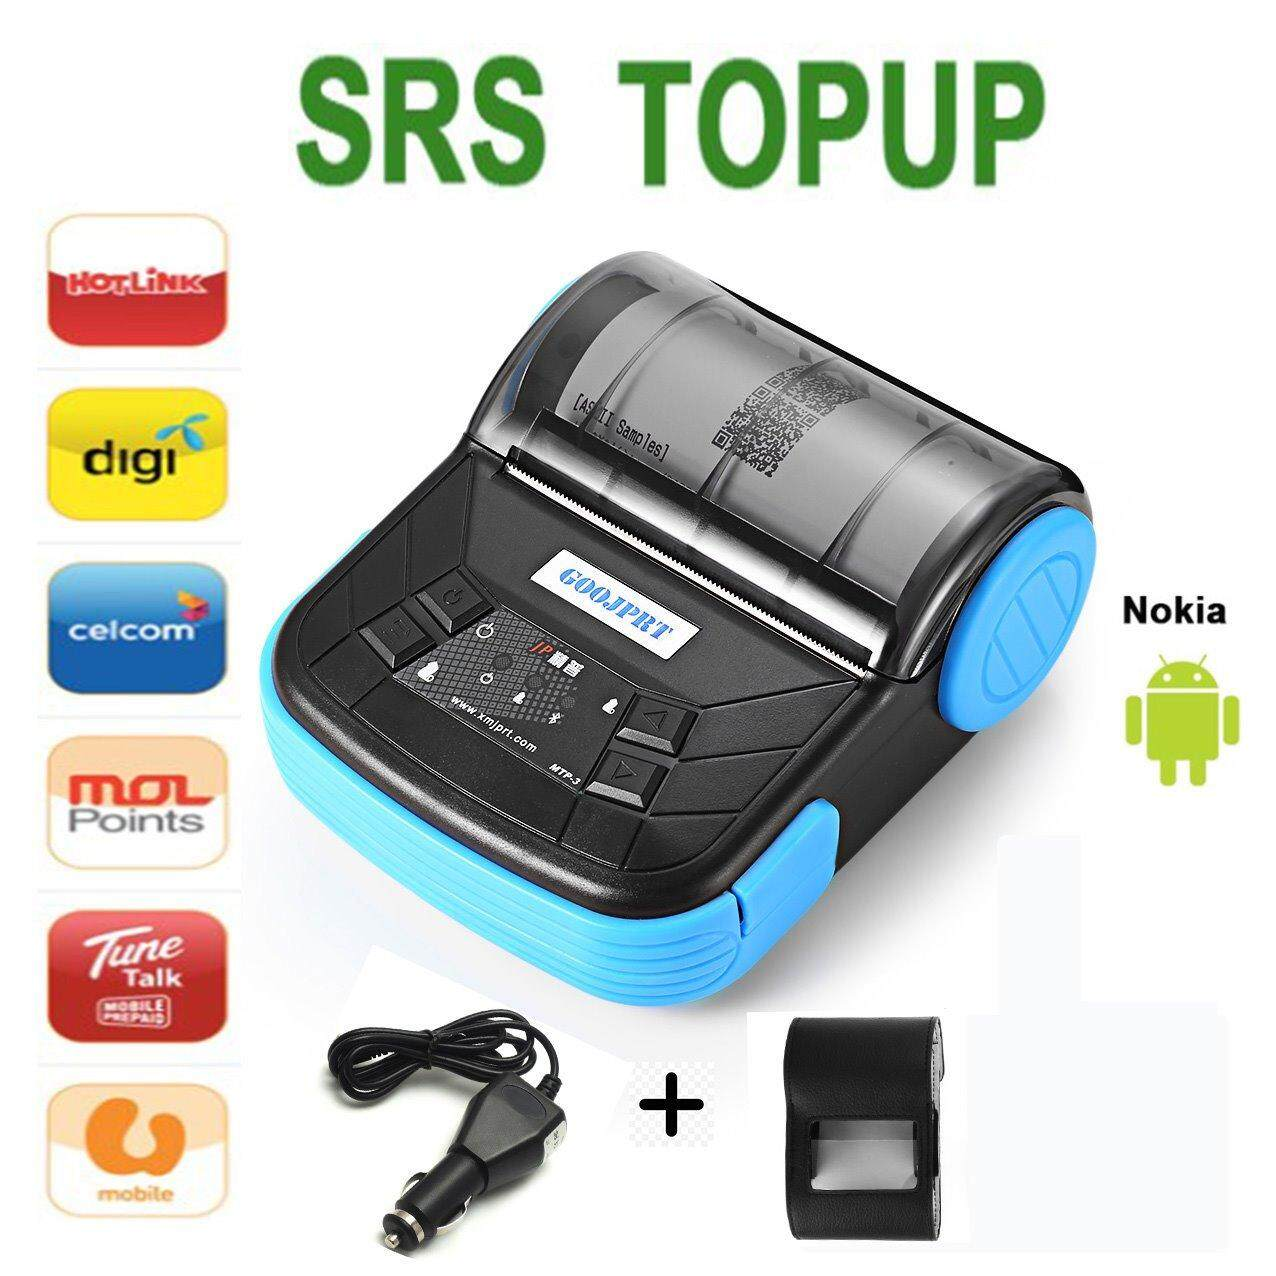 80Mm Mobile Bluetooth Thermal Receipt Printer With Case And Car Charger For Top Up Srs Intl ถูก